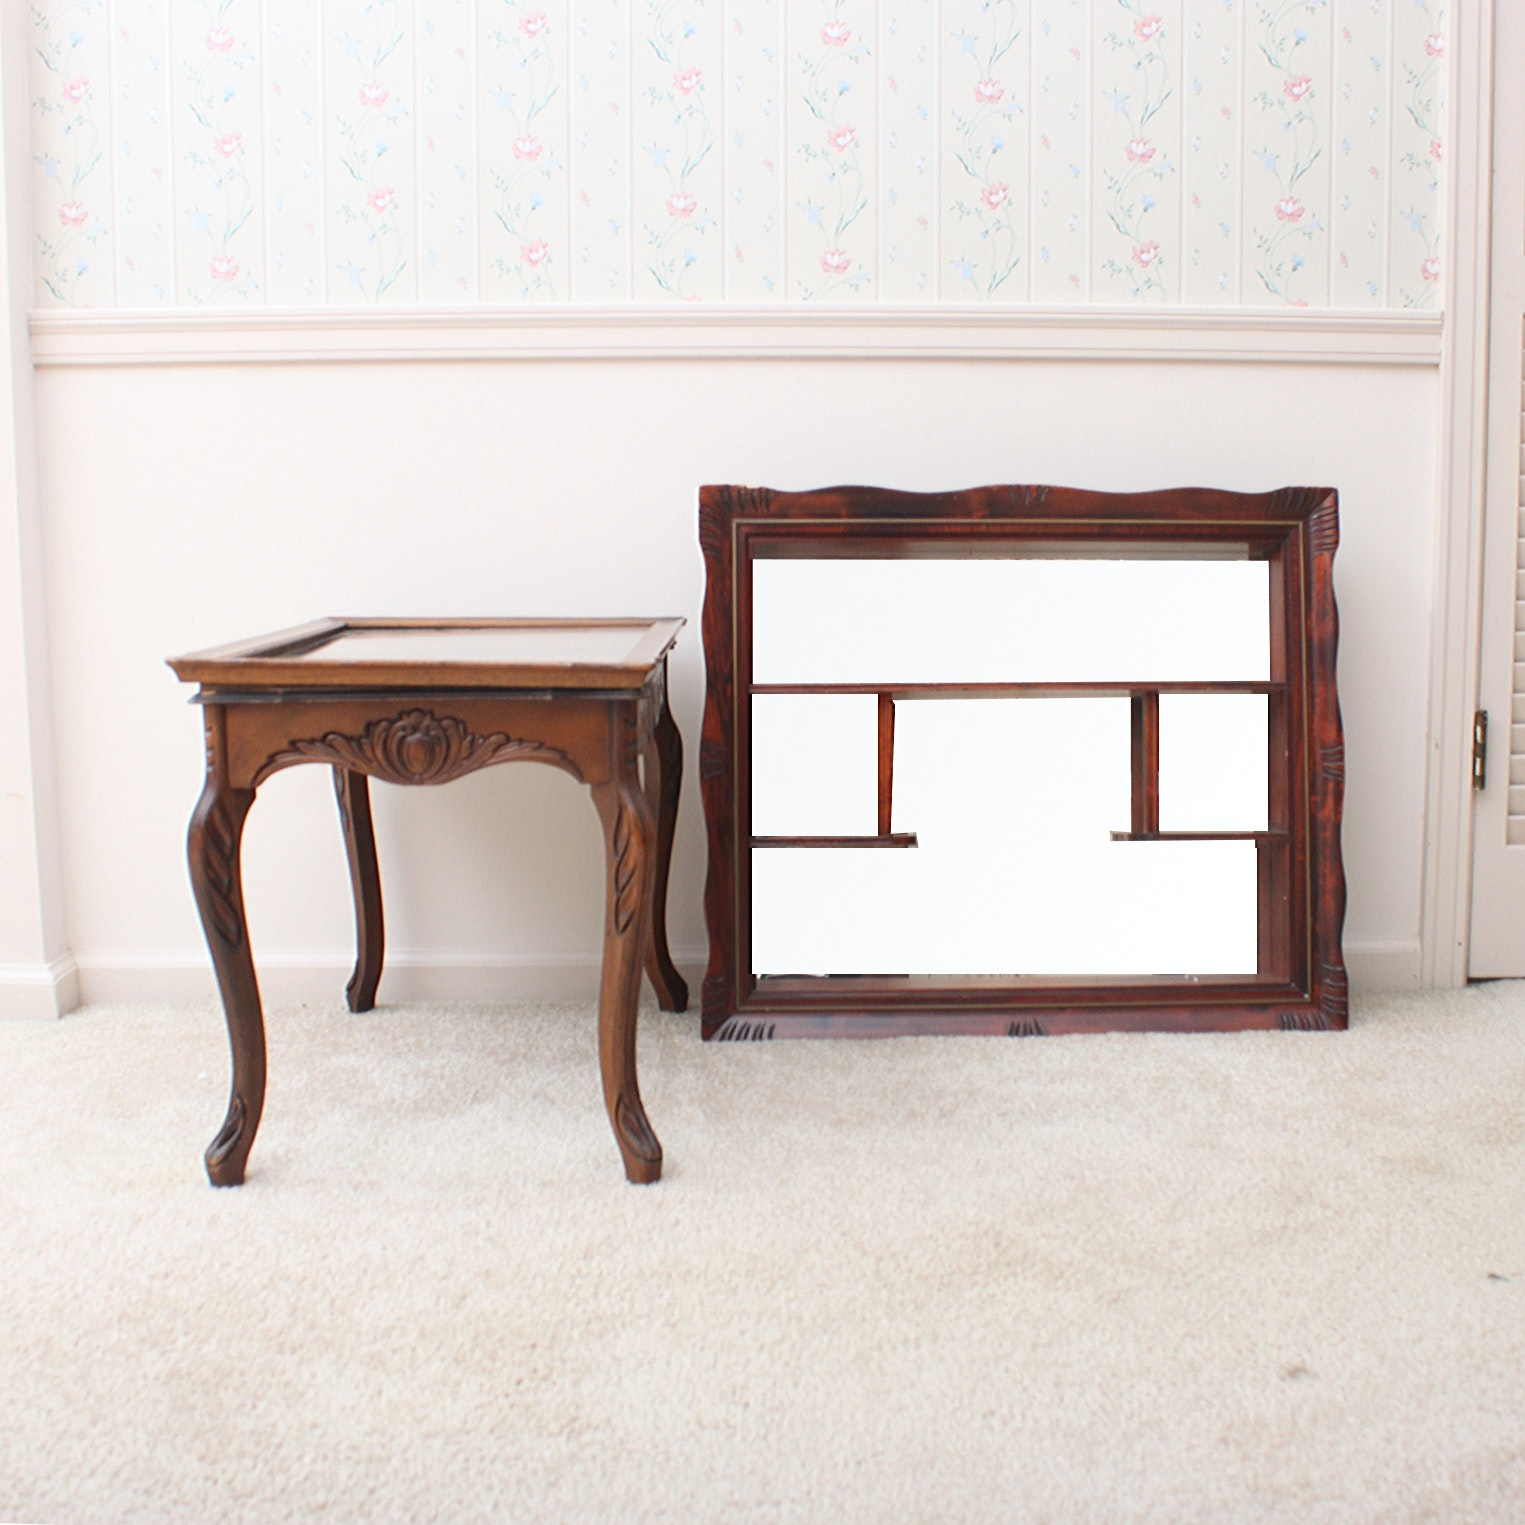 Vintage Marquetry Side Table and Wall Shelf With Mirror